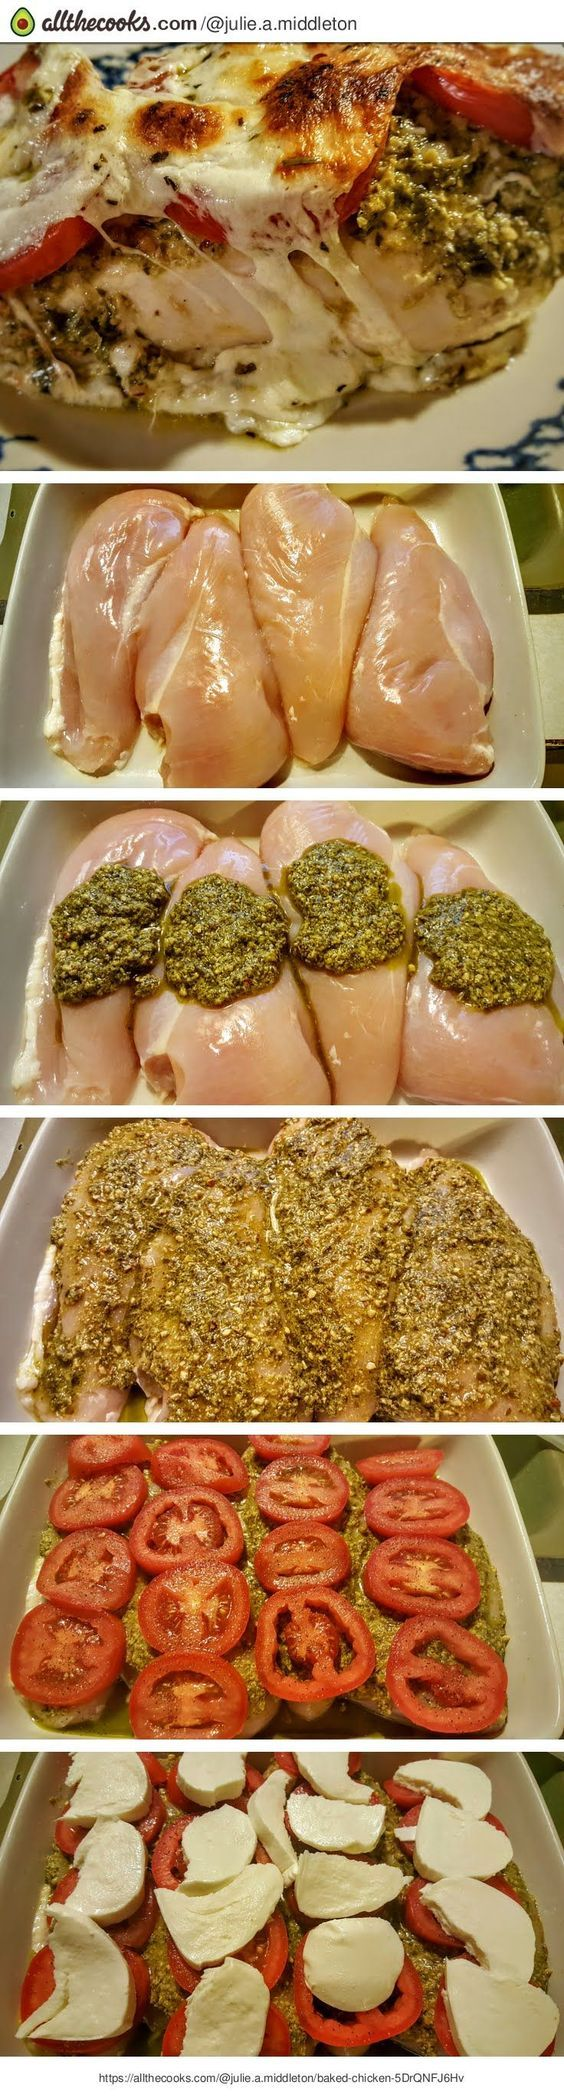 "Pesto Baked Chicken! ""The flavors burst in your mouth from start to finish - fre..."